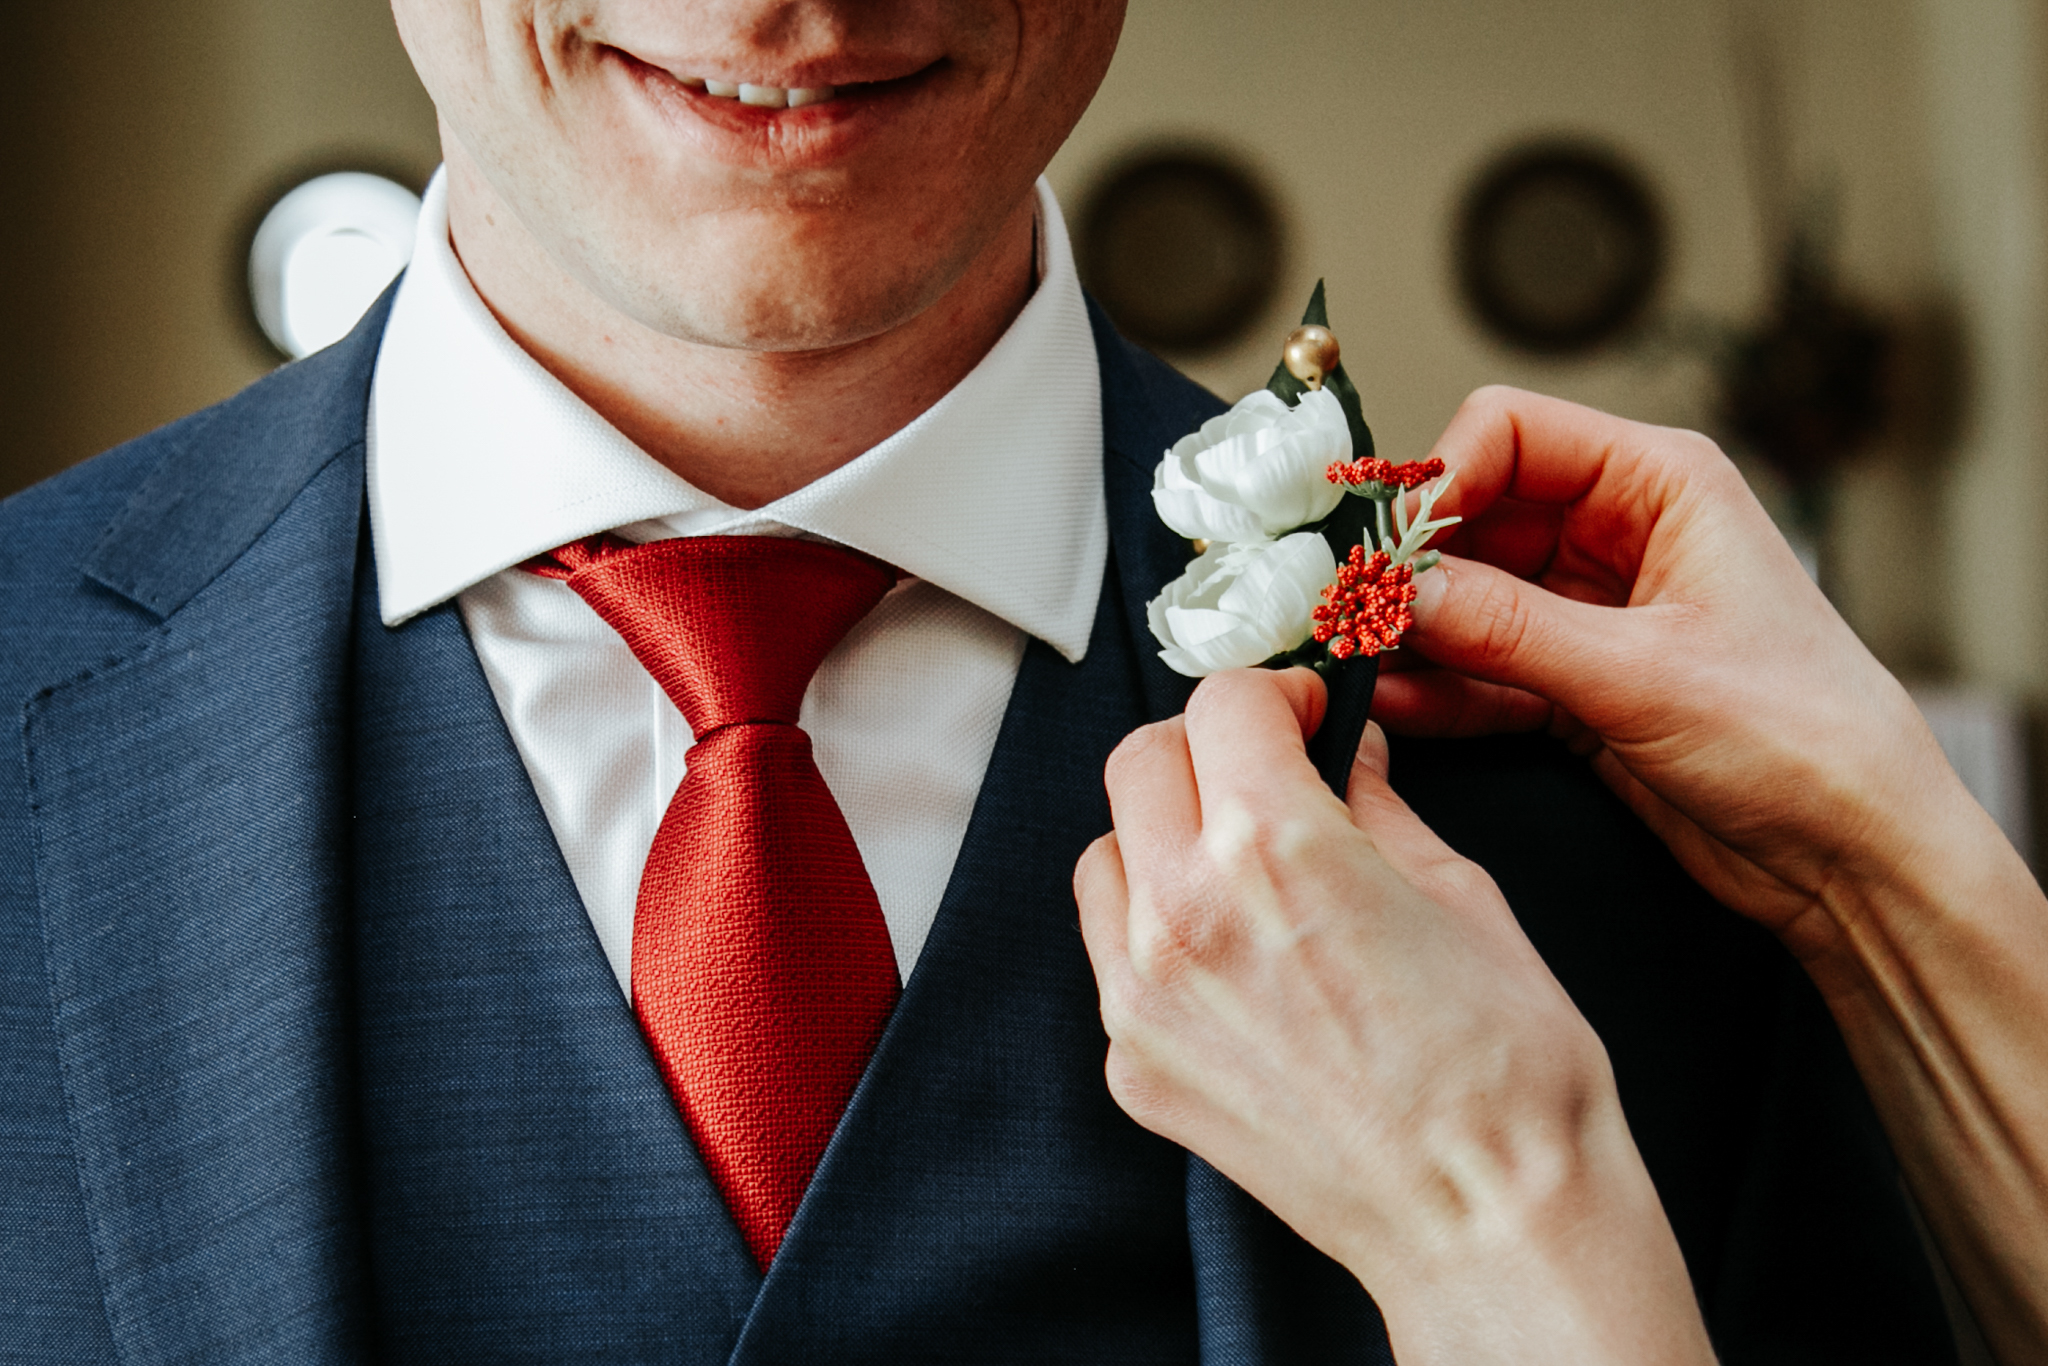 lethbridge-wedding-photographer-love-and-be-loved-photography-groom-prep-photo-image-picture-19.jpg